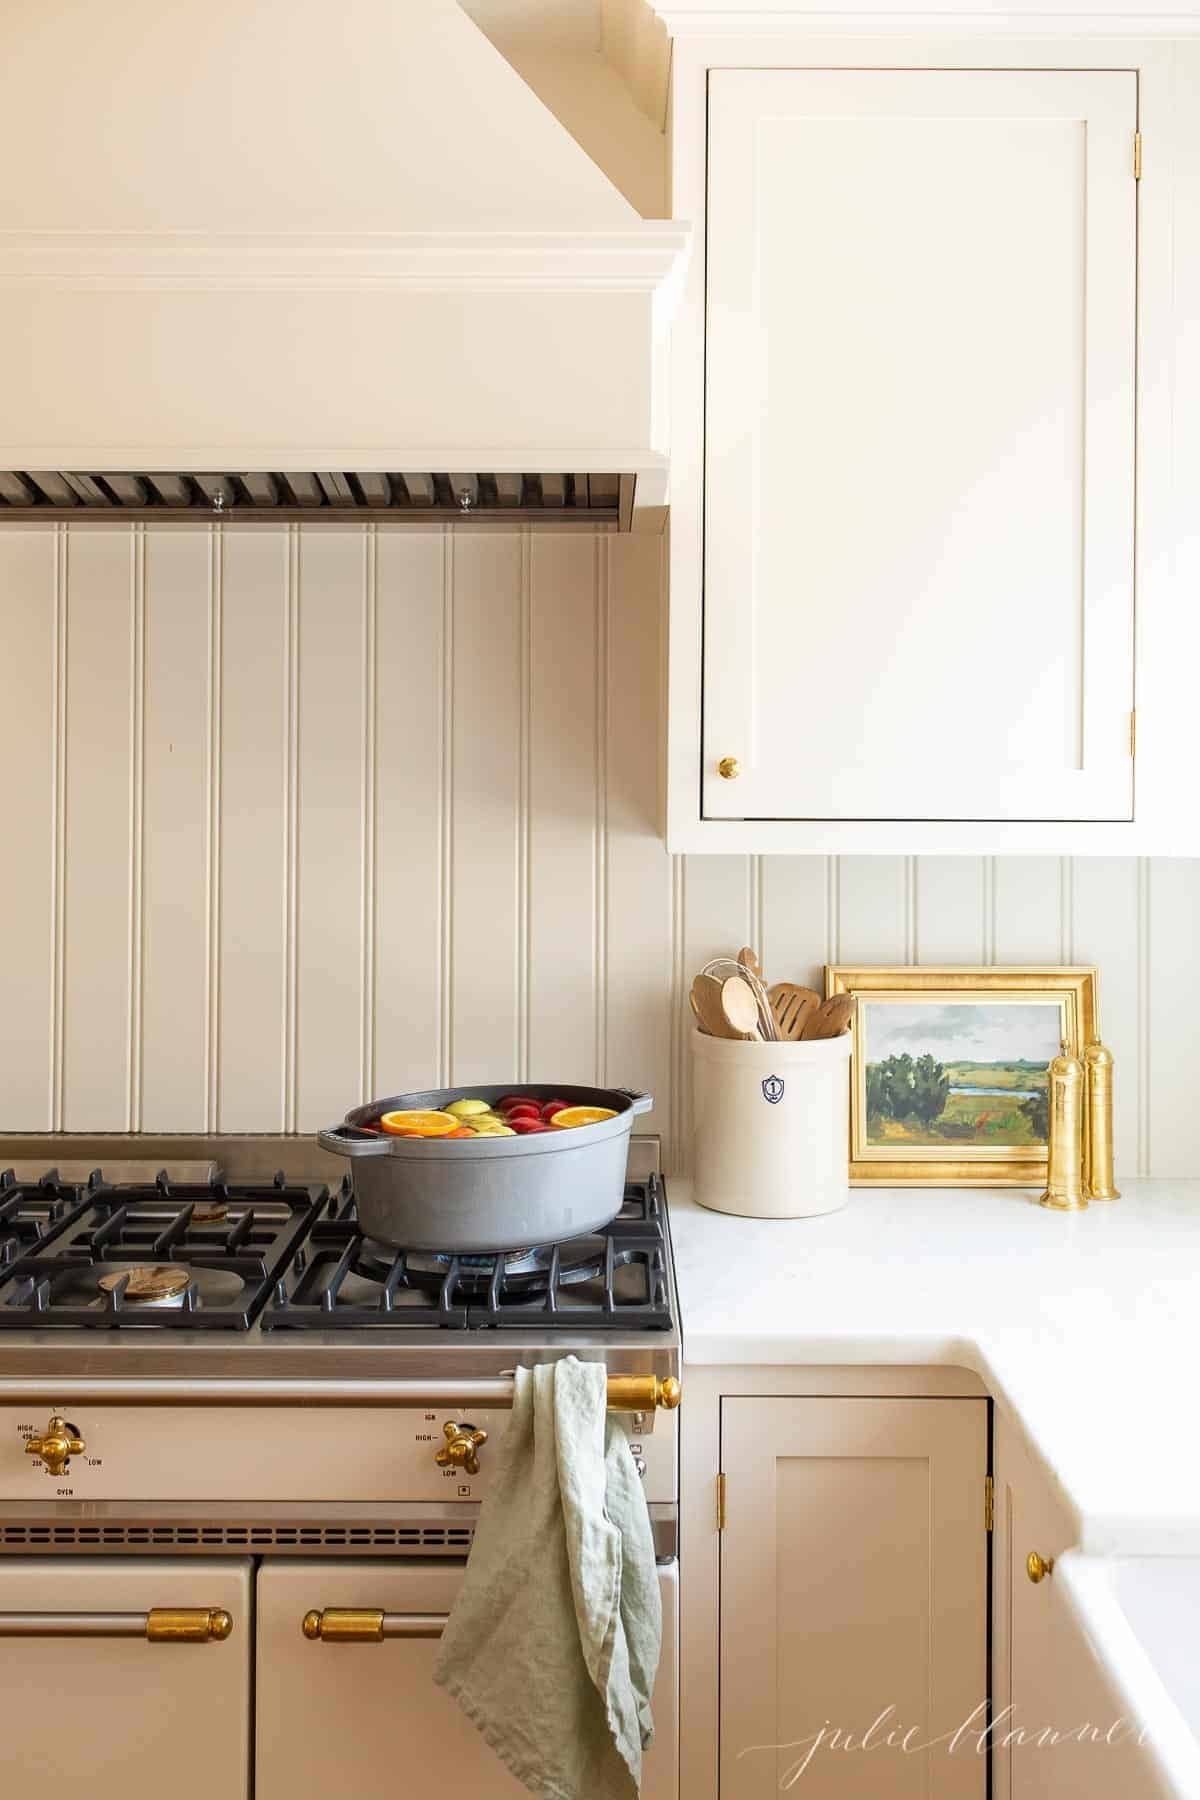 Two cast iron pots on a stove in a white kitchen filled with a homemade apple cider recipe simmering.